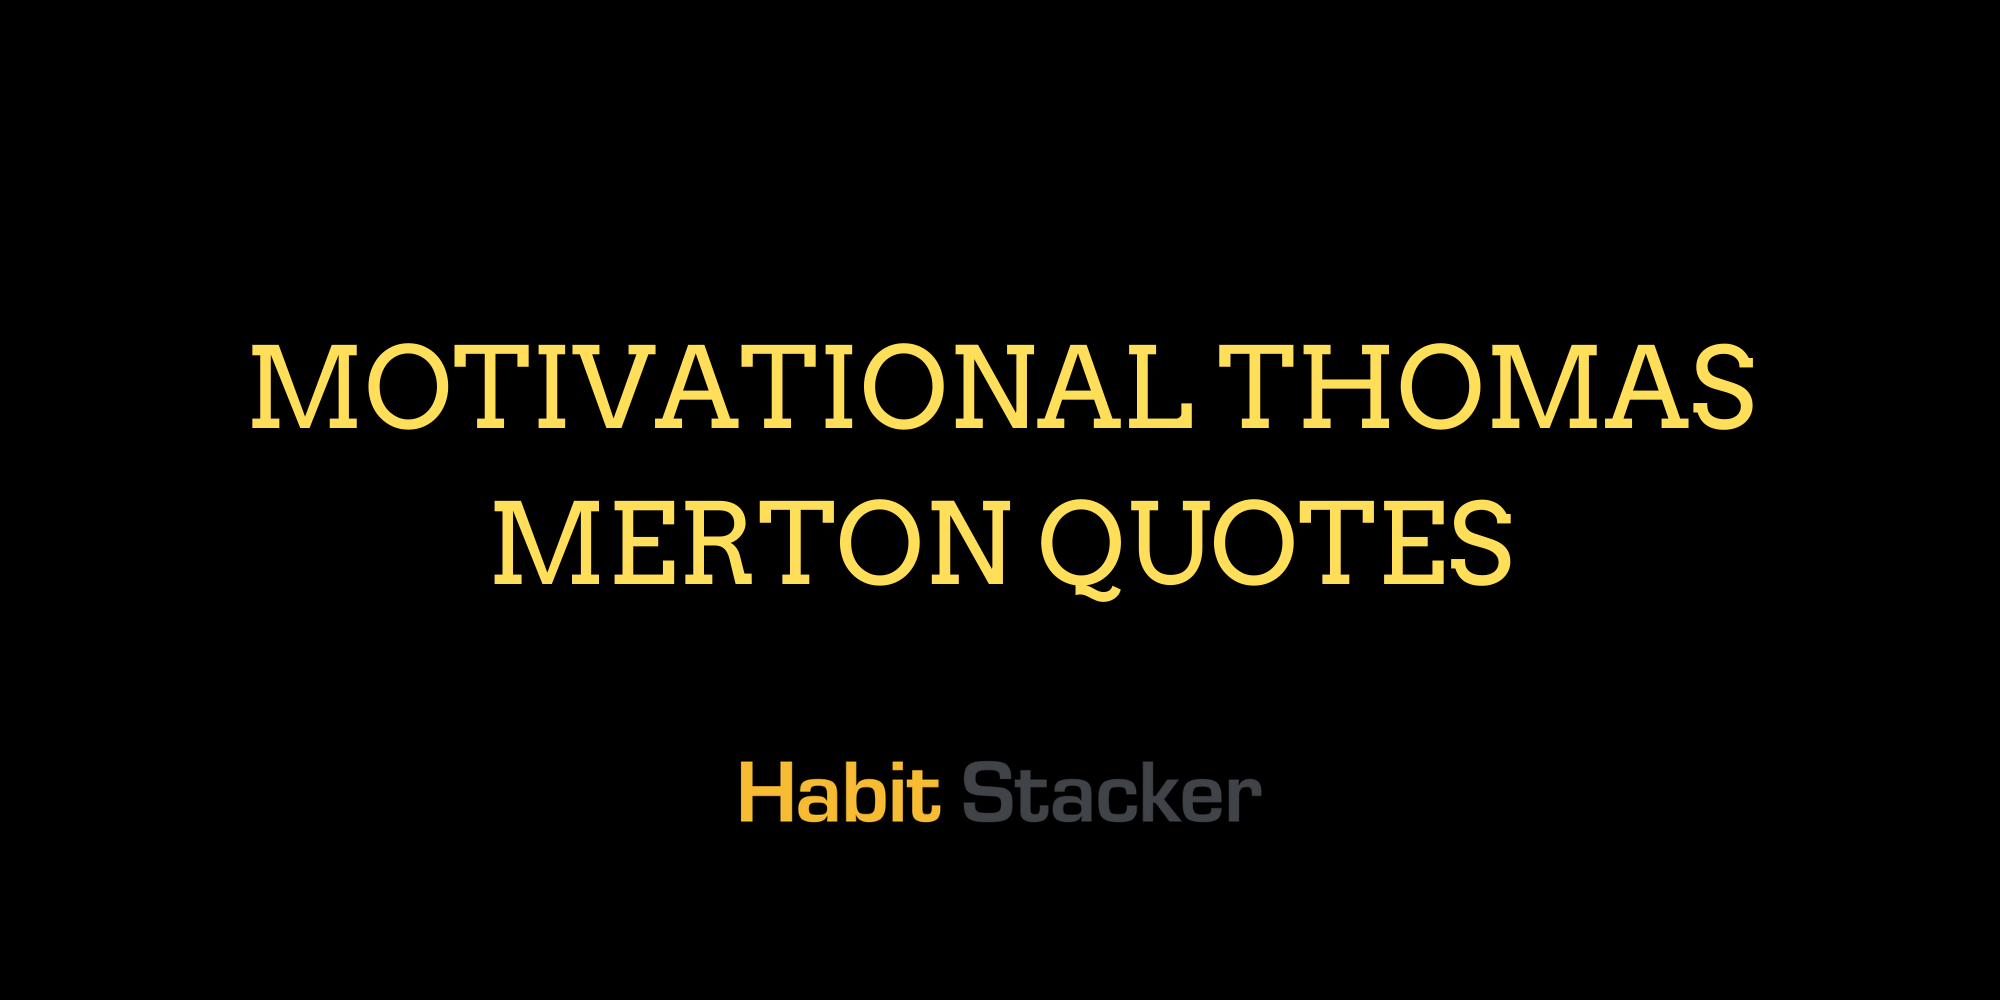 Motivational Thomas Merton Quotes